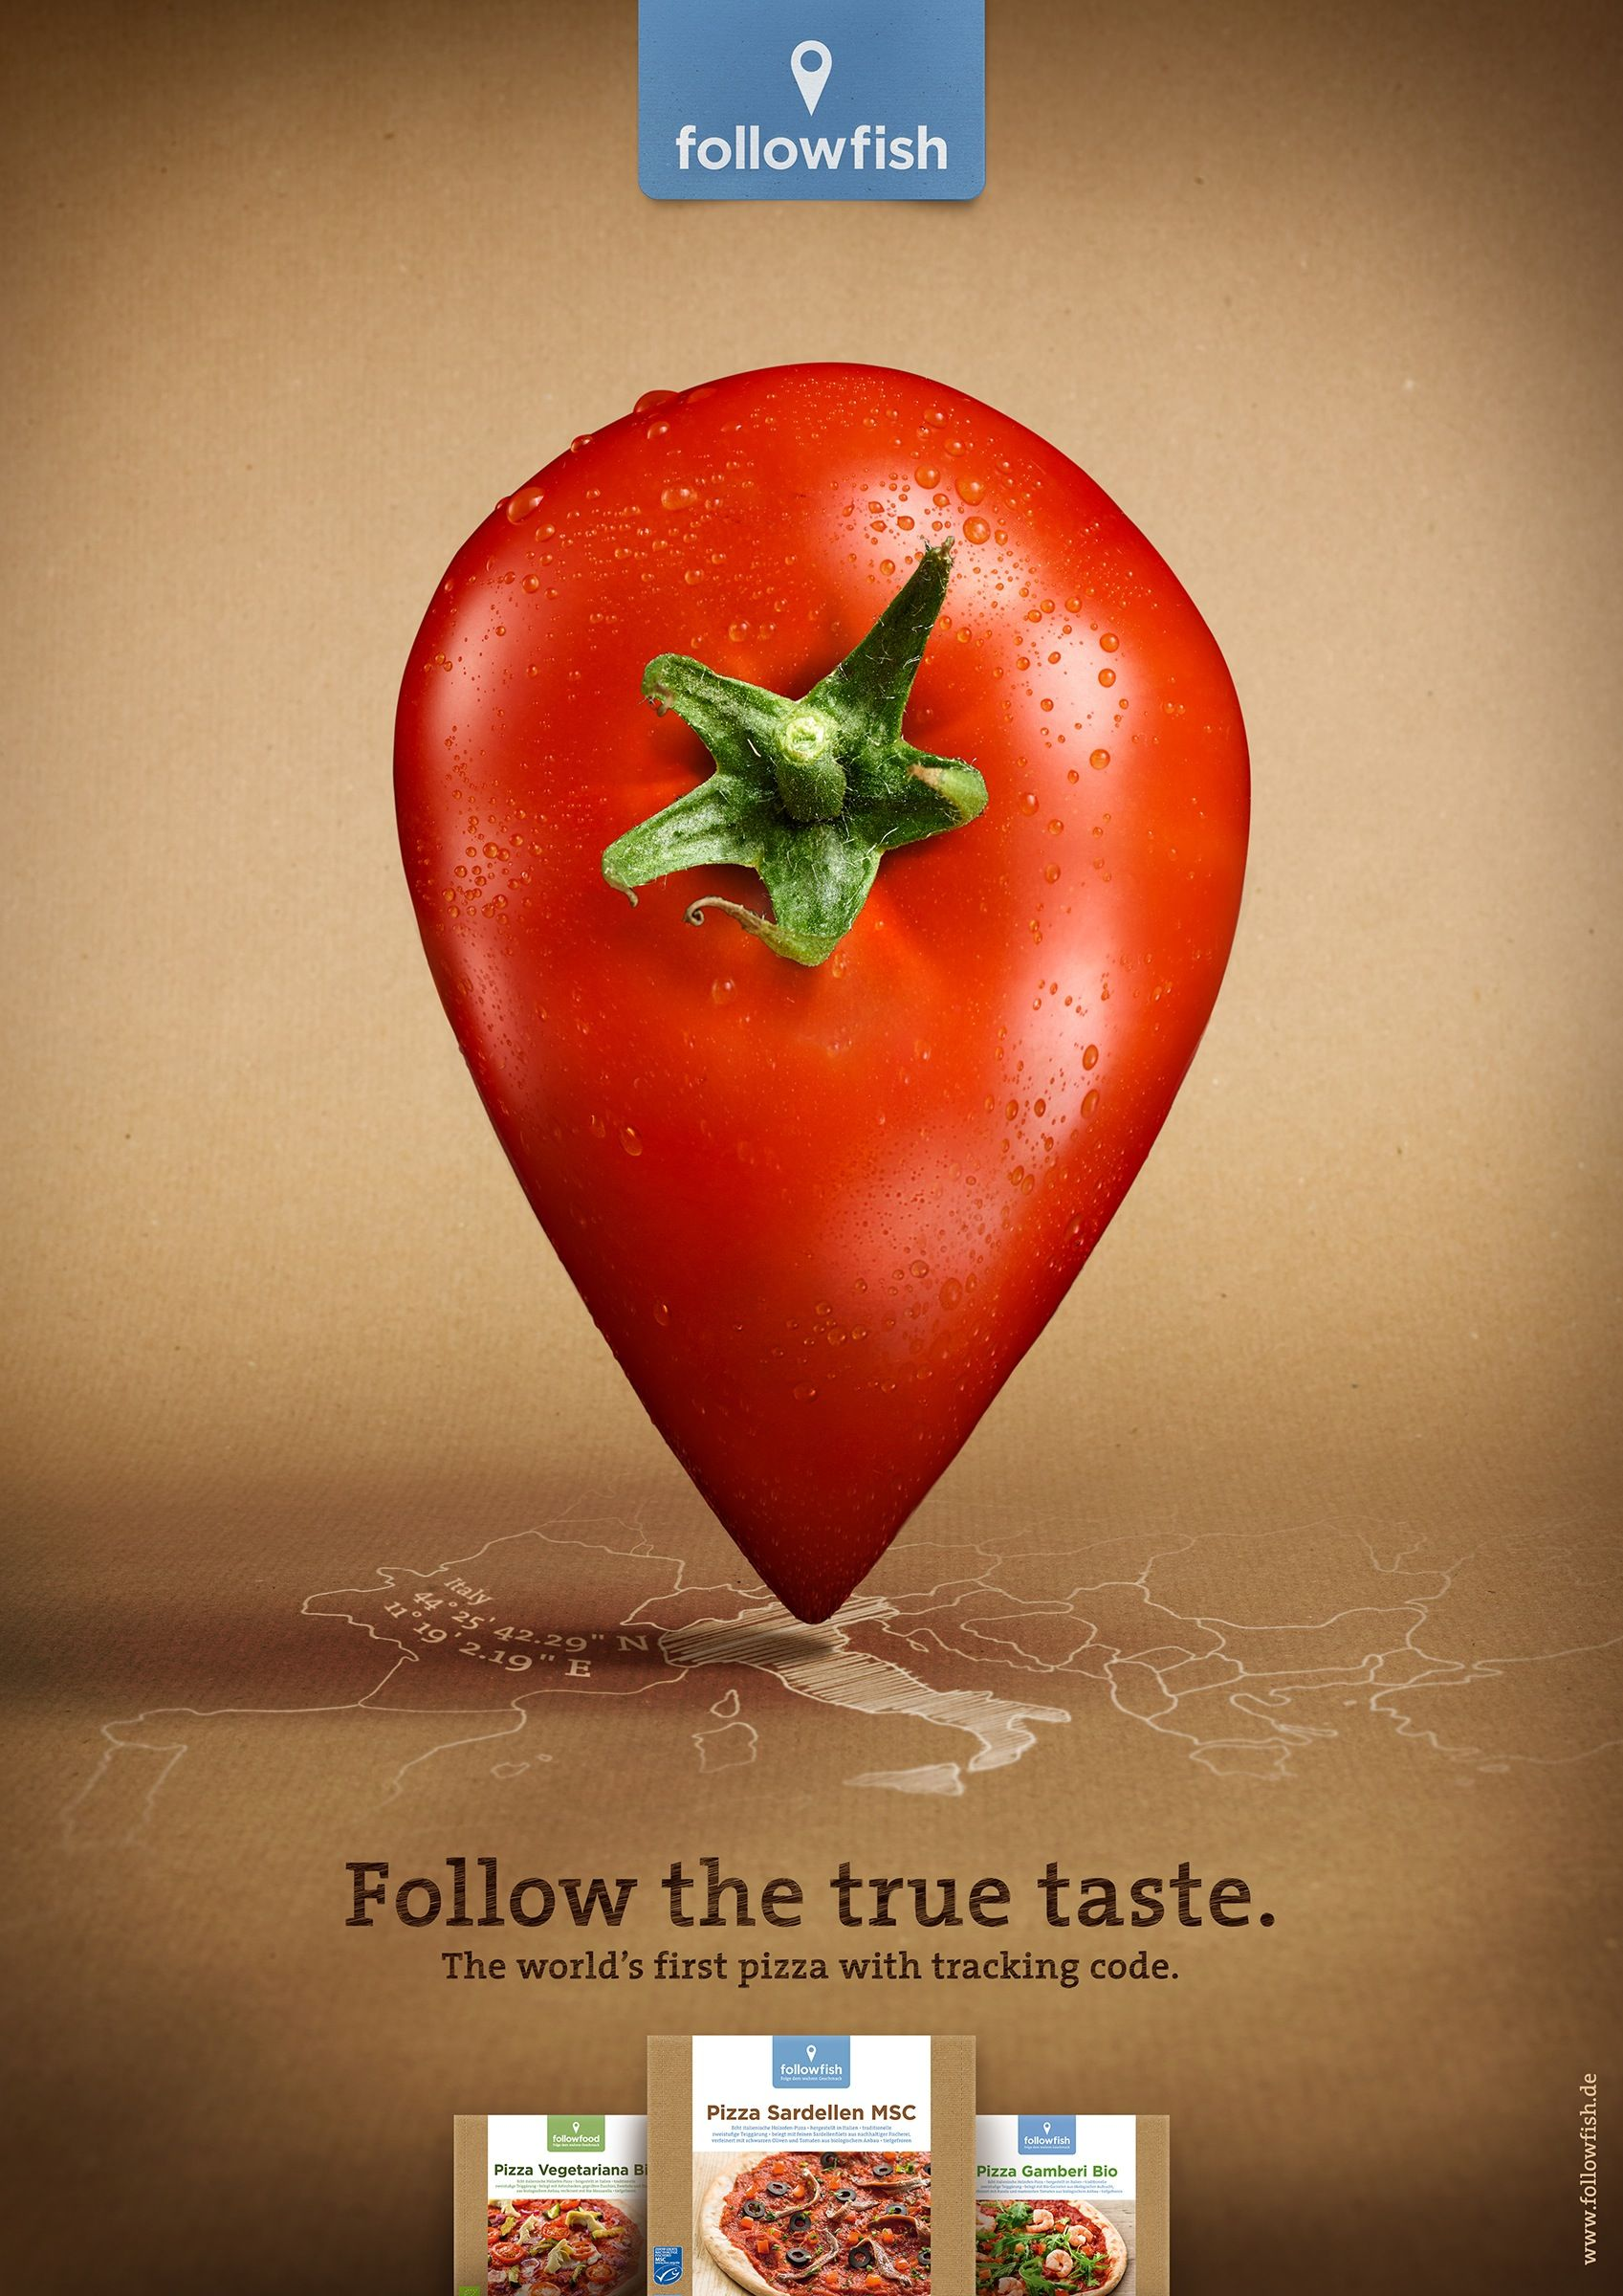 Followfish Tomato Ads Of The World Ads Creative Food Advertising Graphic Design Advertising